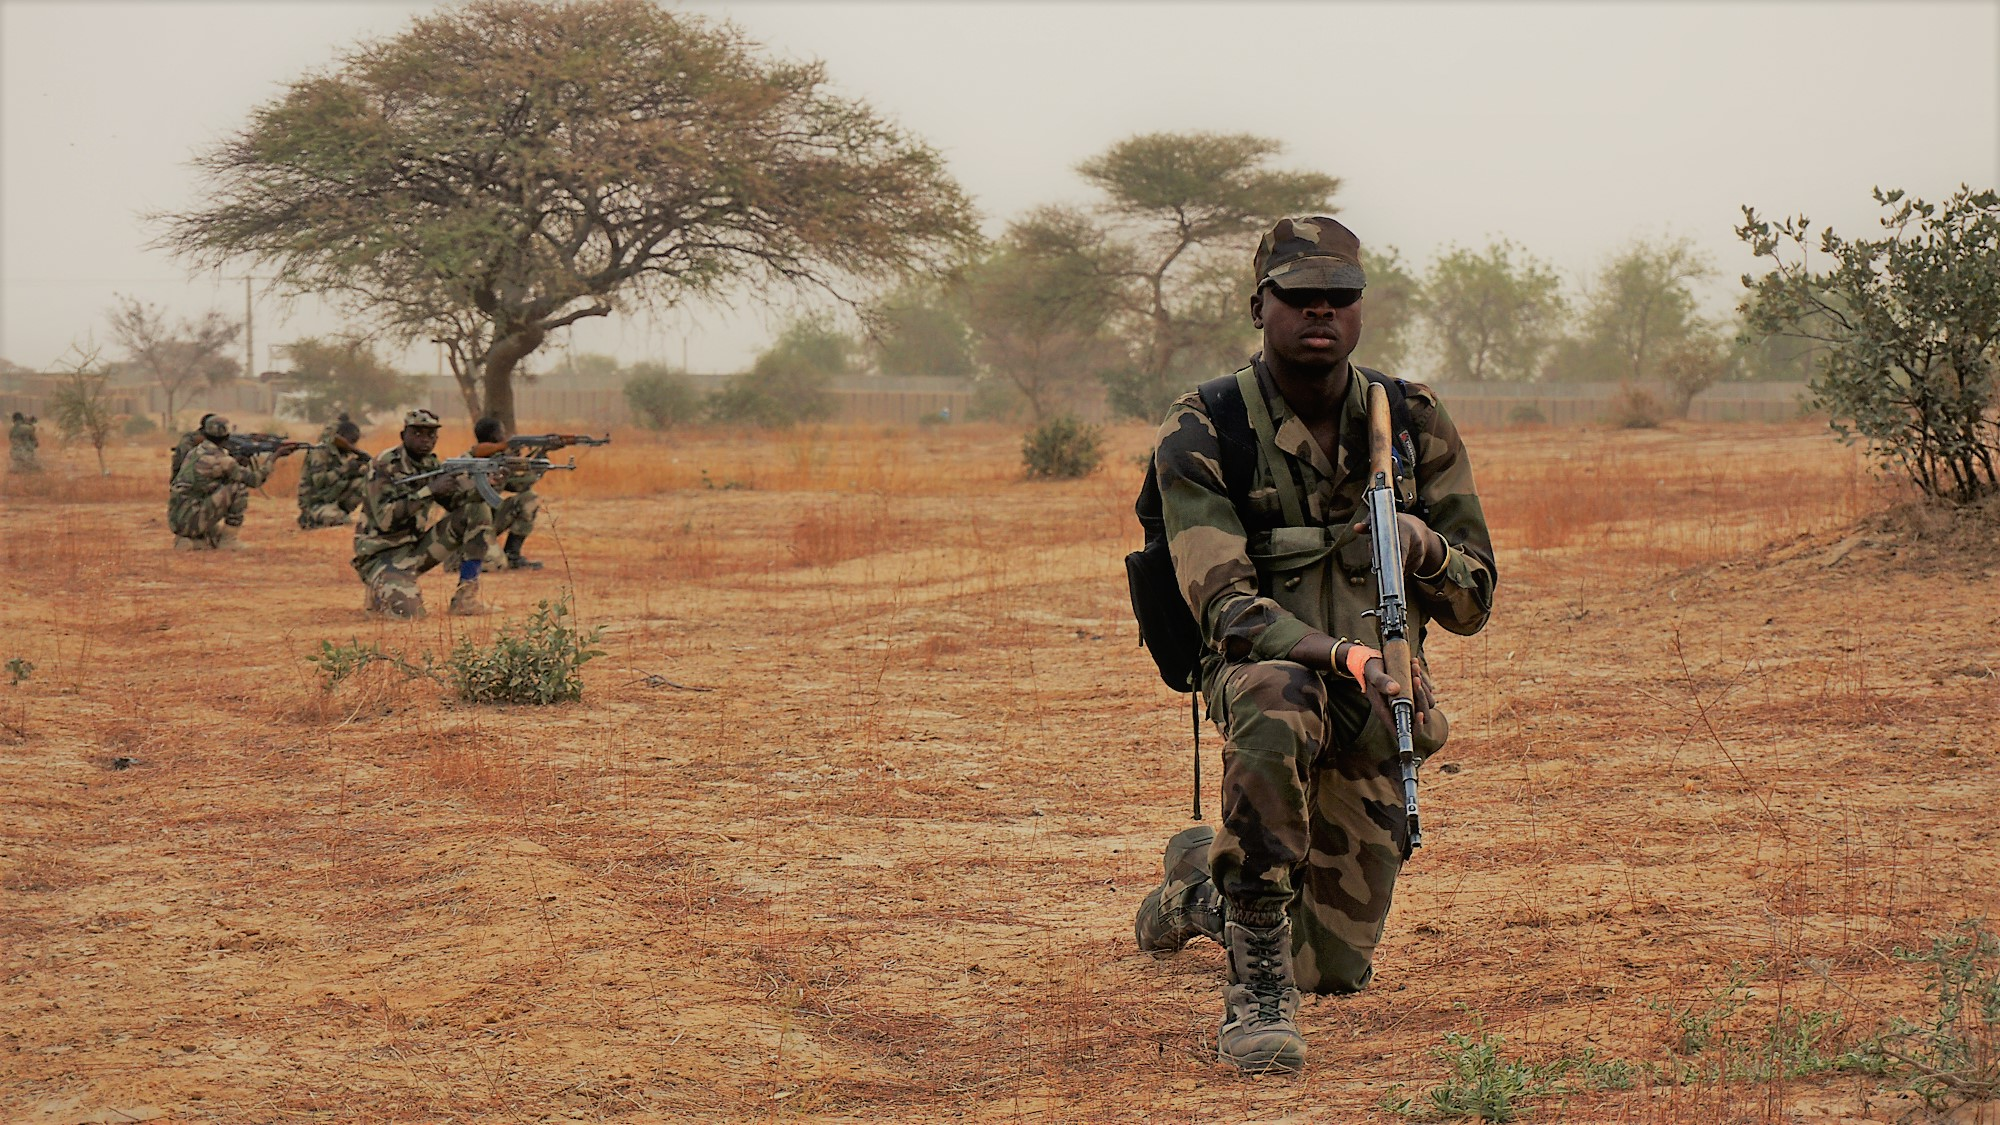 A Nigerien soldier provides rear security for his squad while they performed a dismounted patrol during Exercise Flintlock 2017 in Diffa, Niger, March 11, 2017. Flintlock exercises strengthen security institutions, promote multilateral sharing of information, and develop interoperability among partner nations in the Trans-Sahara. (U.S. Army photo by Spc. Zayid Ballesteros/Released)